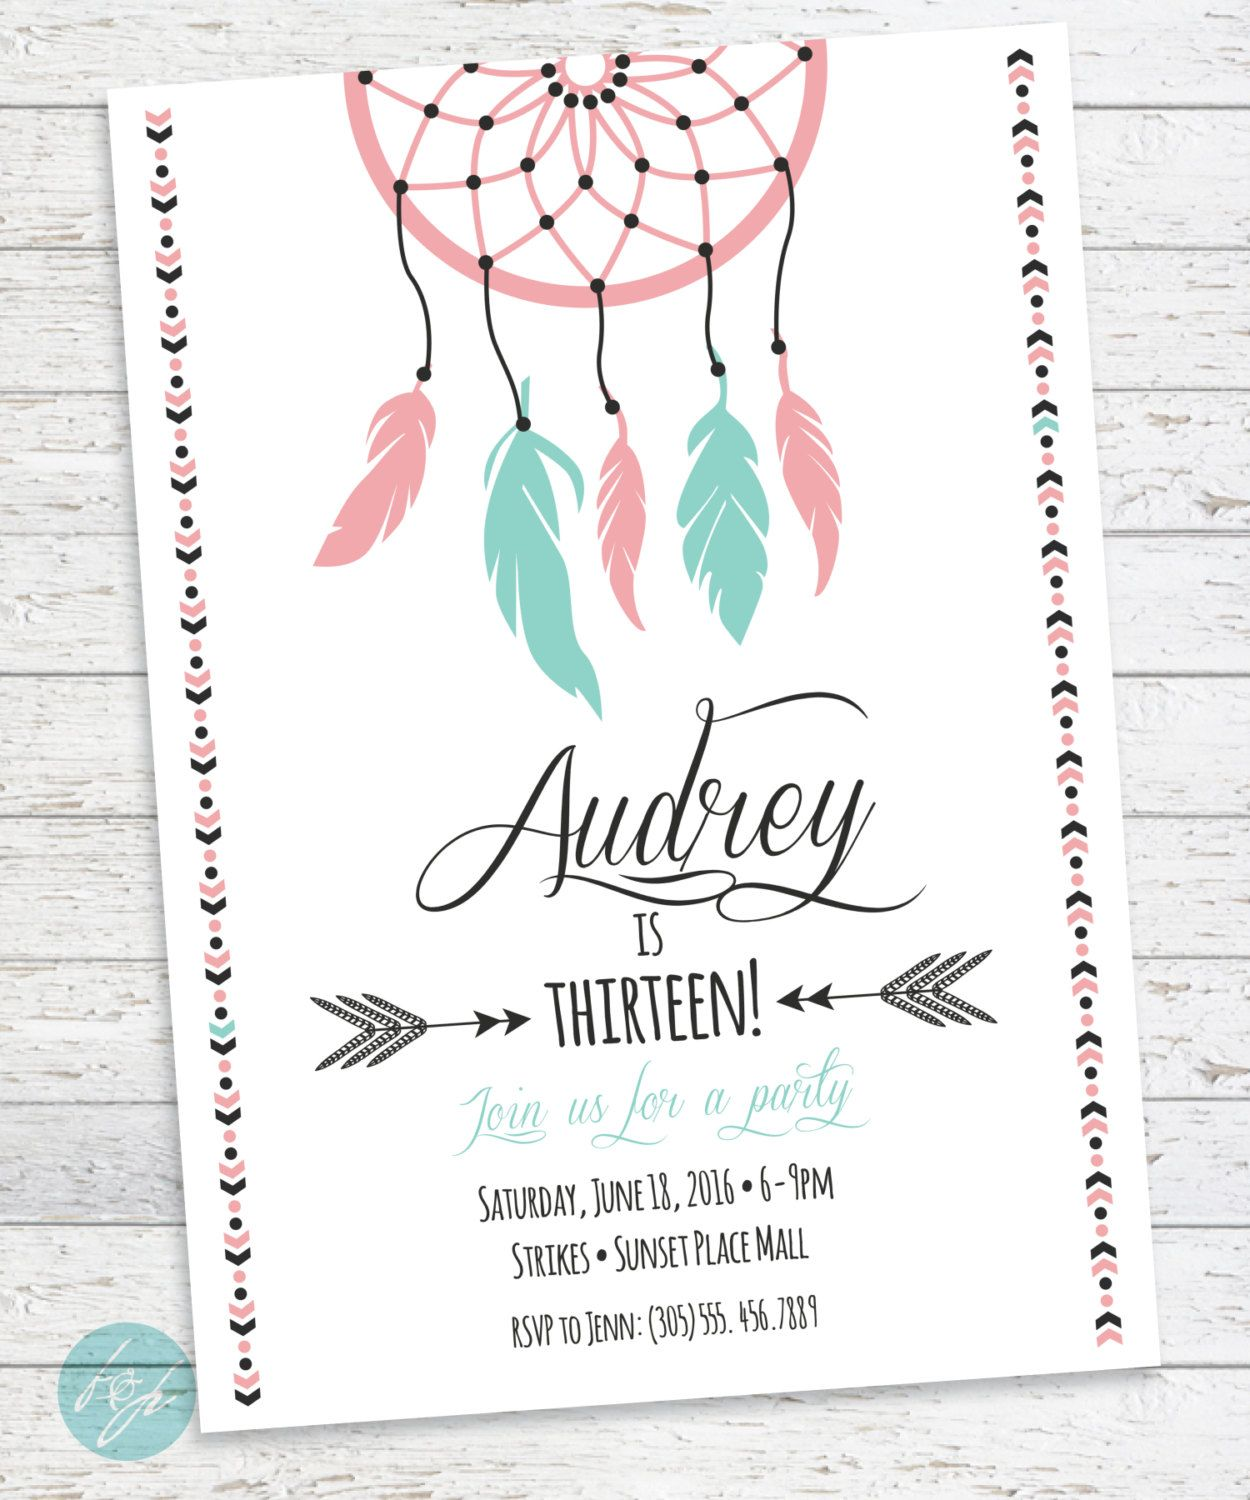 Boho Birthday Invitation Aztec Tribal Bohemian Printable Dream Catcher Sweet 16 Teen Tween By FlairandPaper On